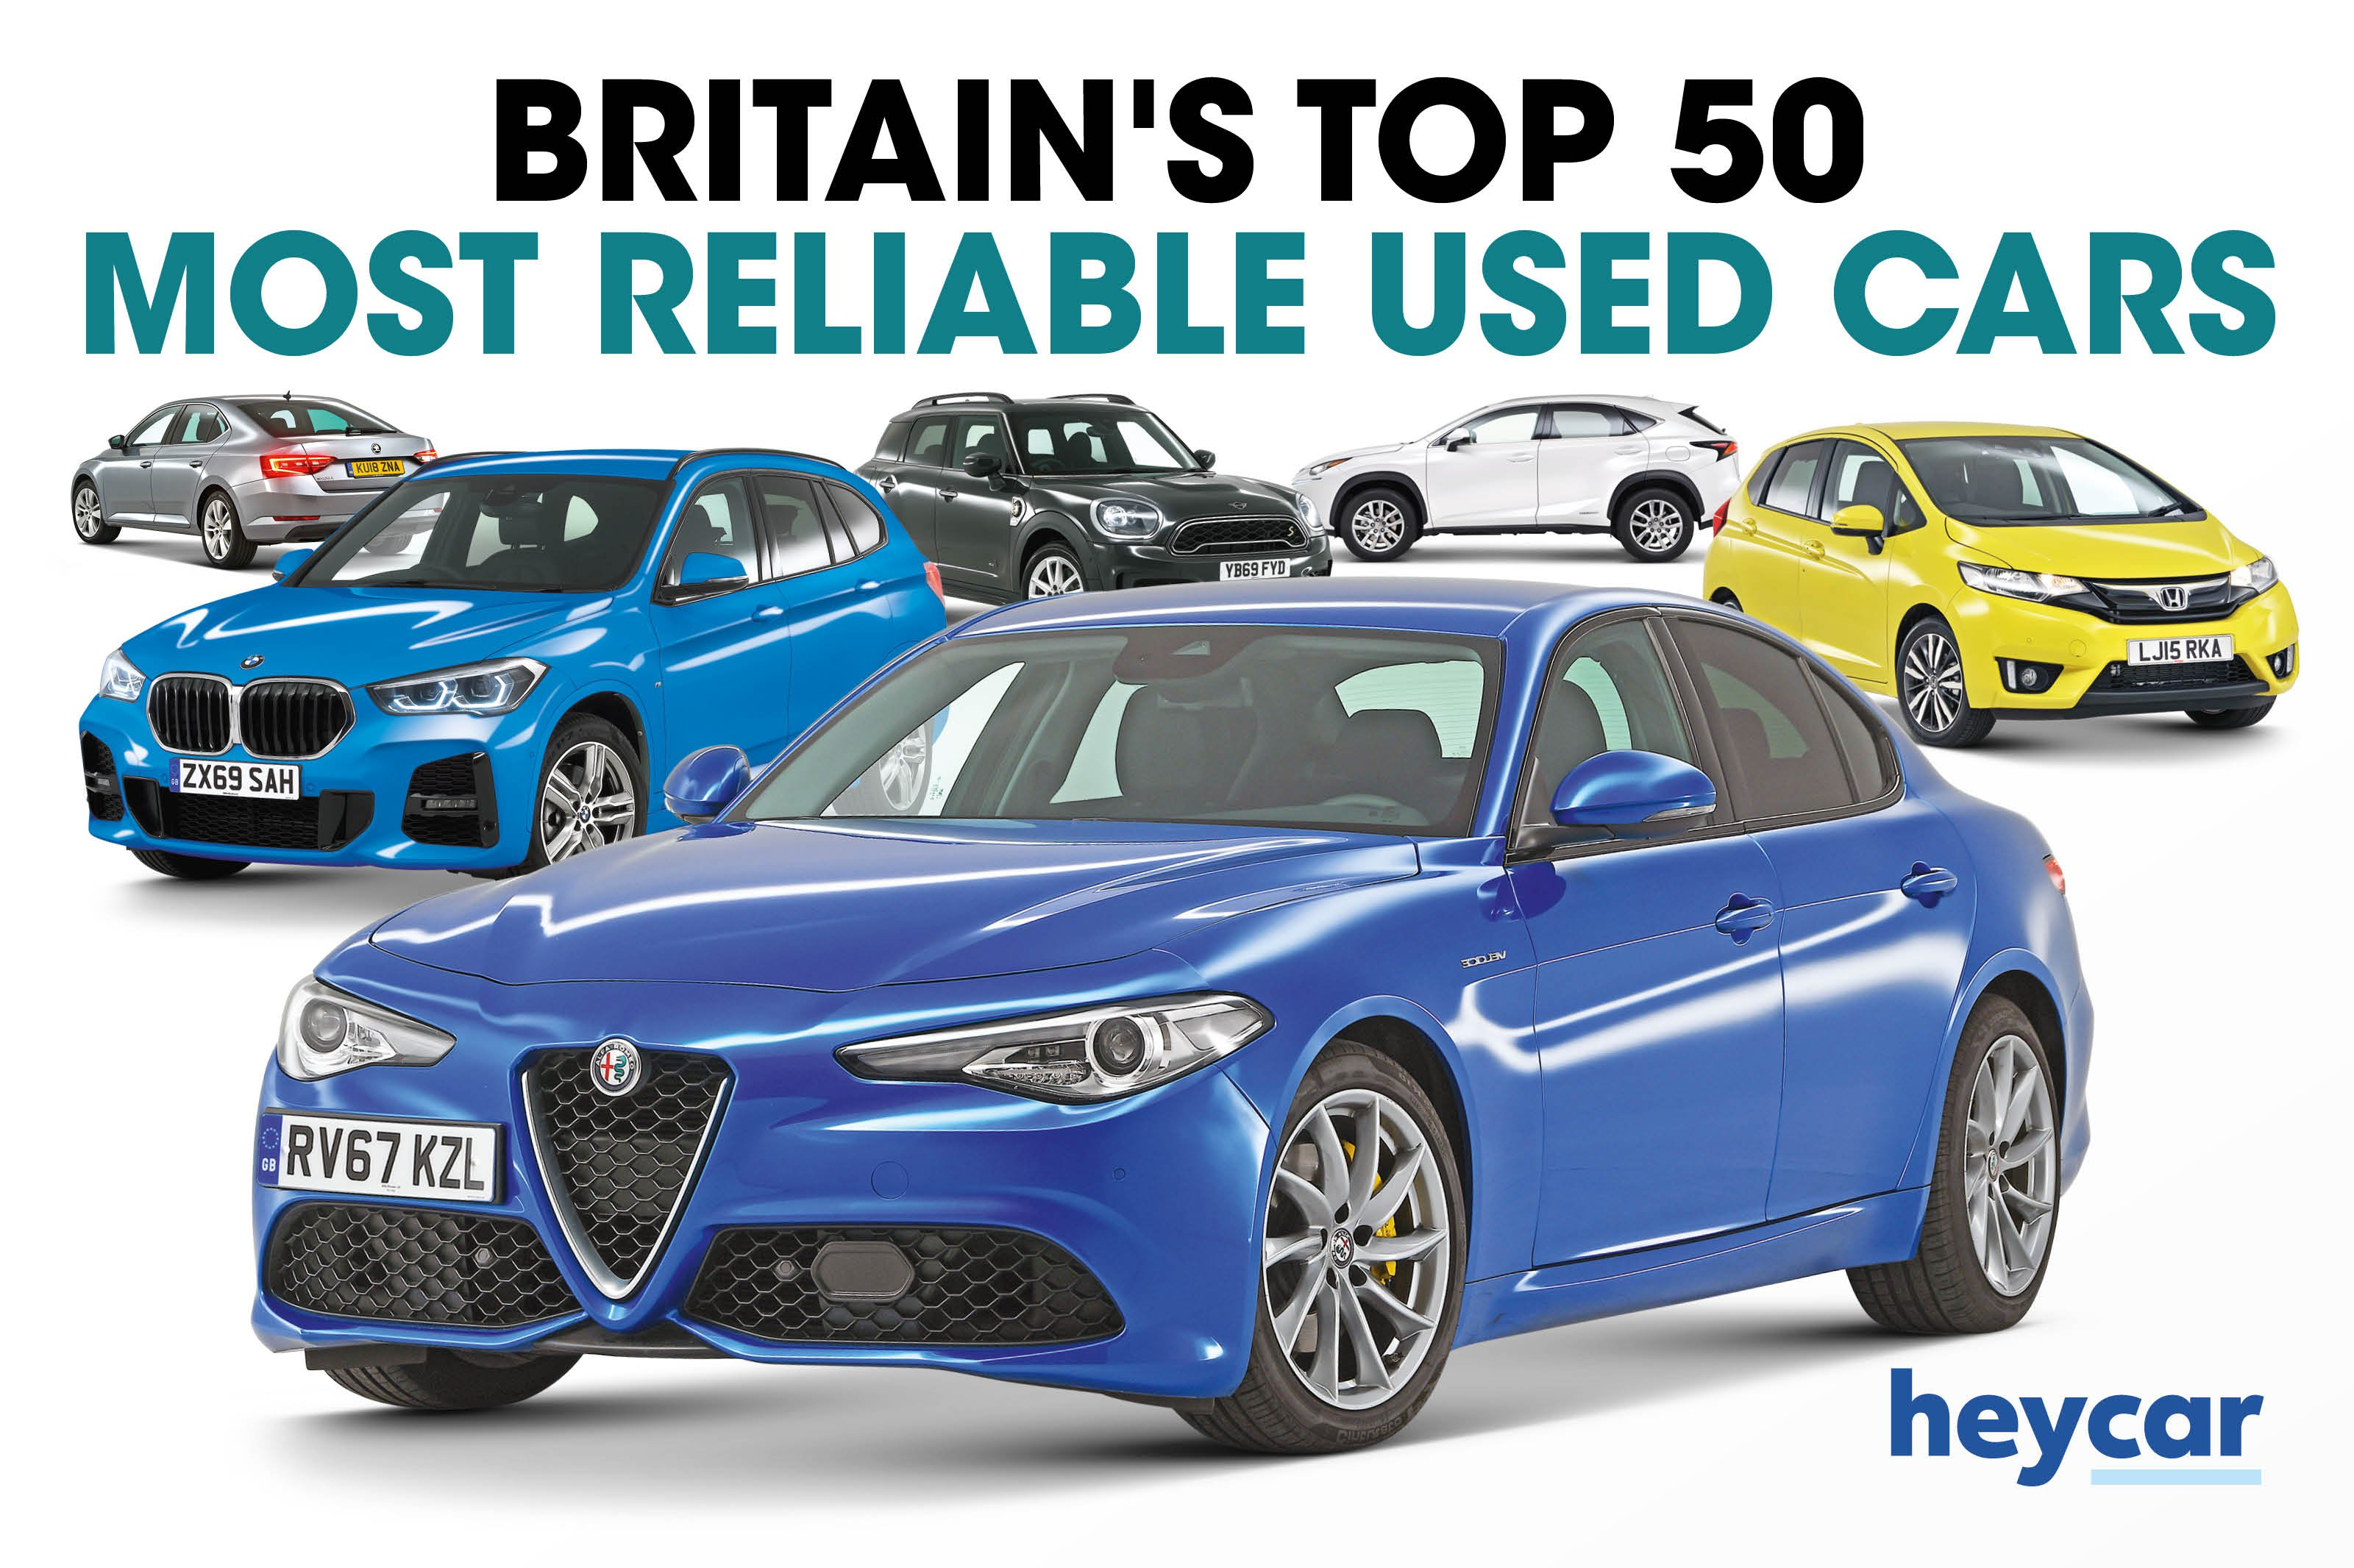 Top 50 most reliable used cars